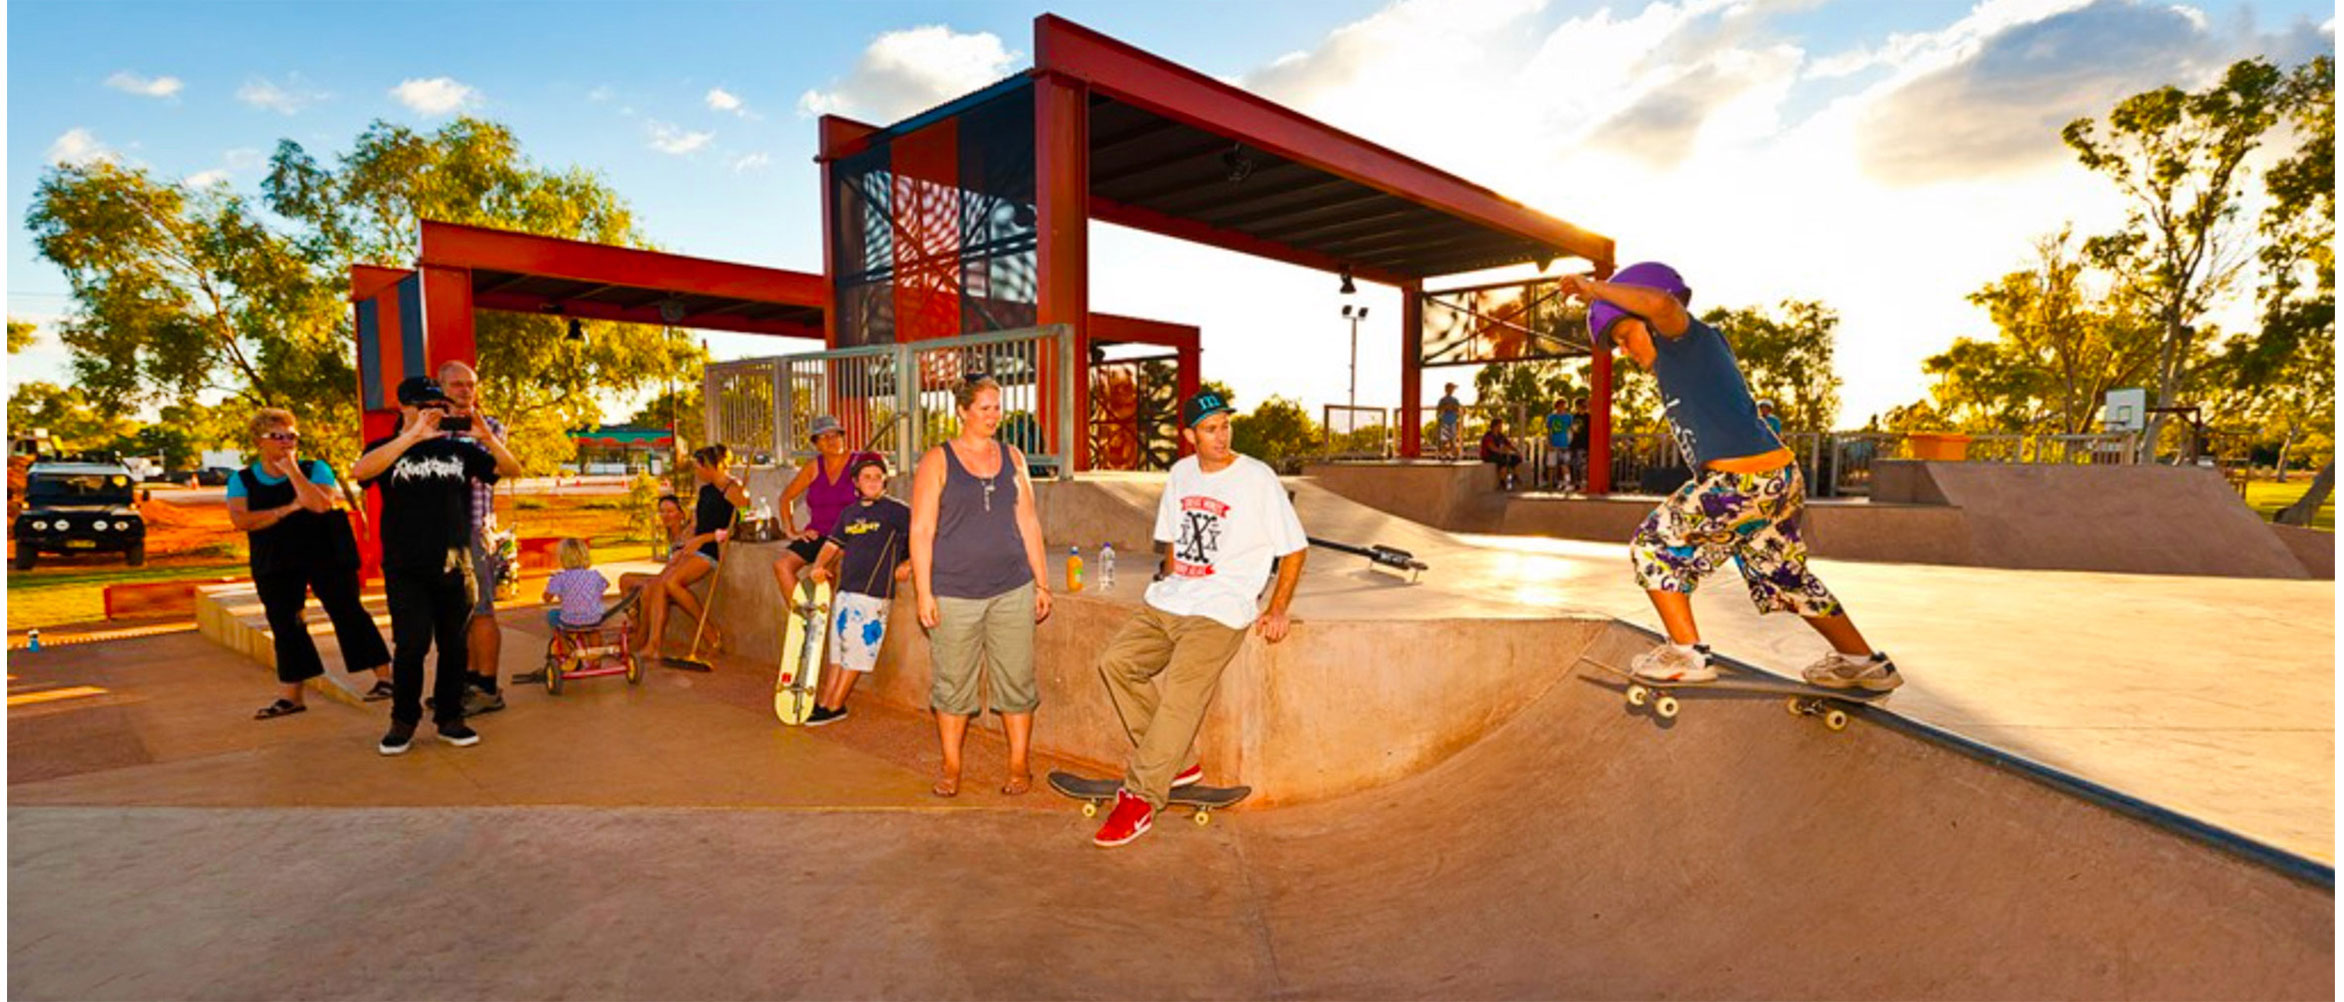 Young skater drops in at Exmouth skate park Western Australia